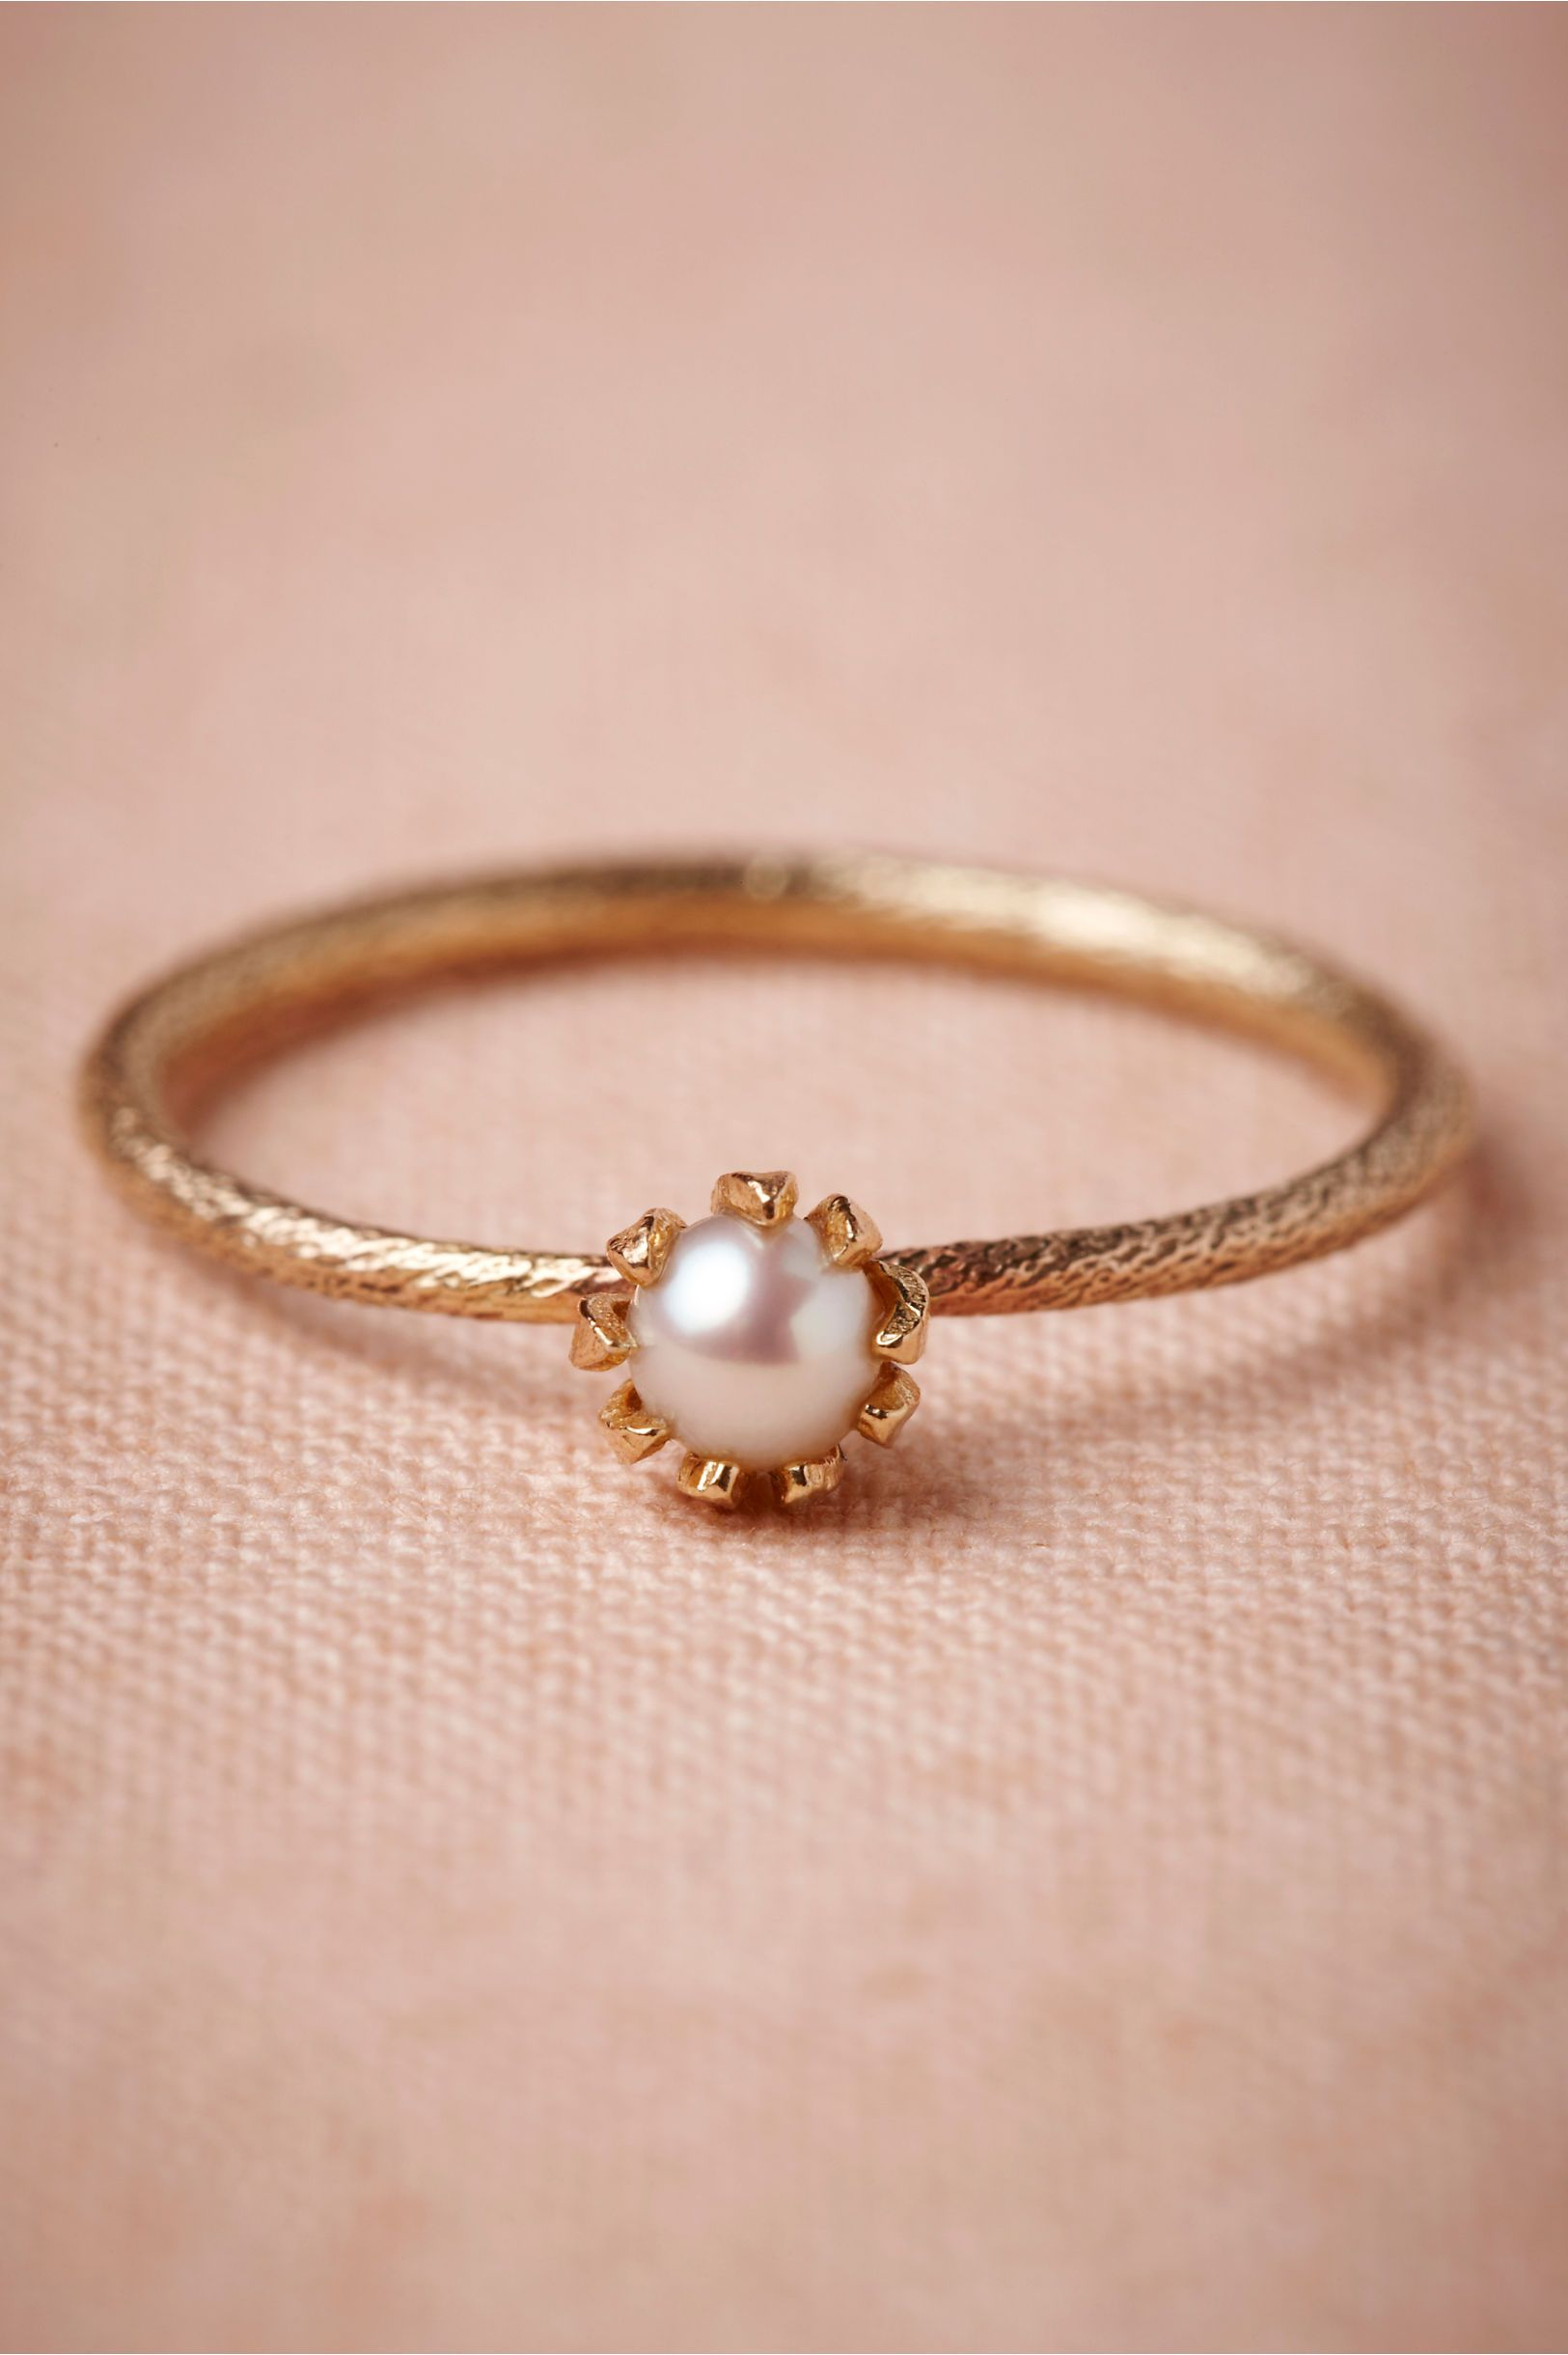 Mermaid's Coronet Ring is part of Fashion jewelry, Jewelry, Bridal jewelry, Pearl ring, Bling, Beautiful jewelry - Set in a crown of hammered gold prongs, an iridescent underwater gem is worthy of display out of the deep  Handmade by Alex Monroe  4mm diameter pearl  9K gold, freshwater pearl  UK